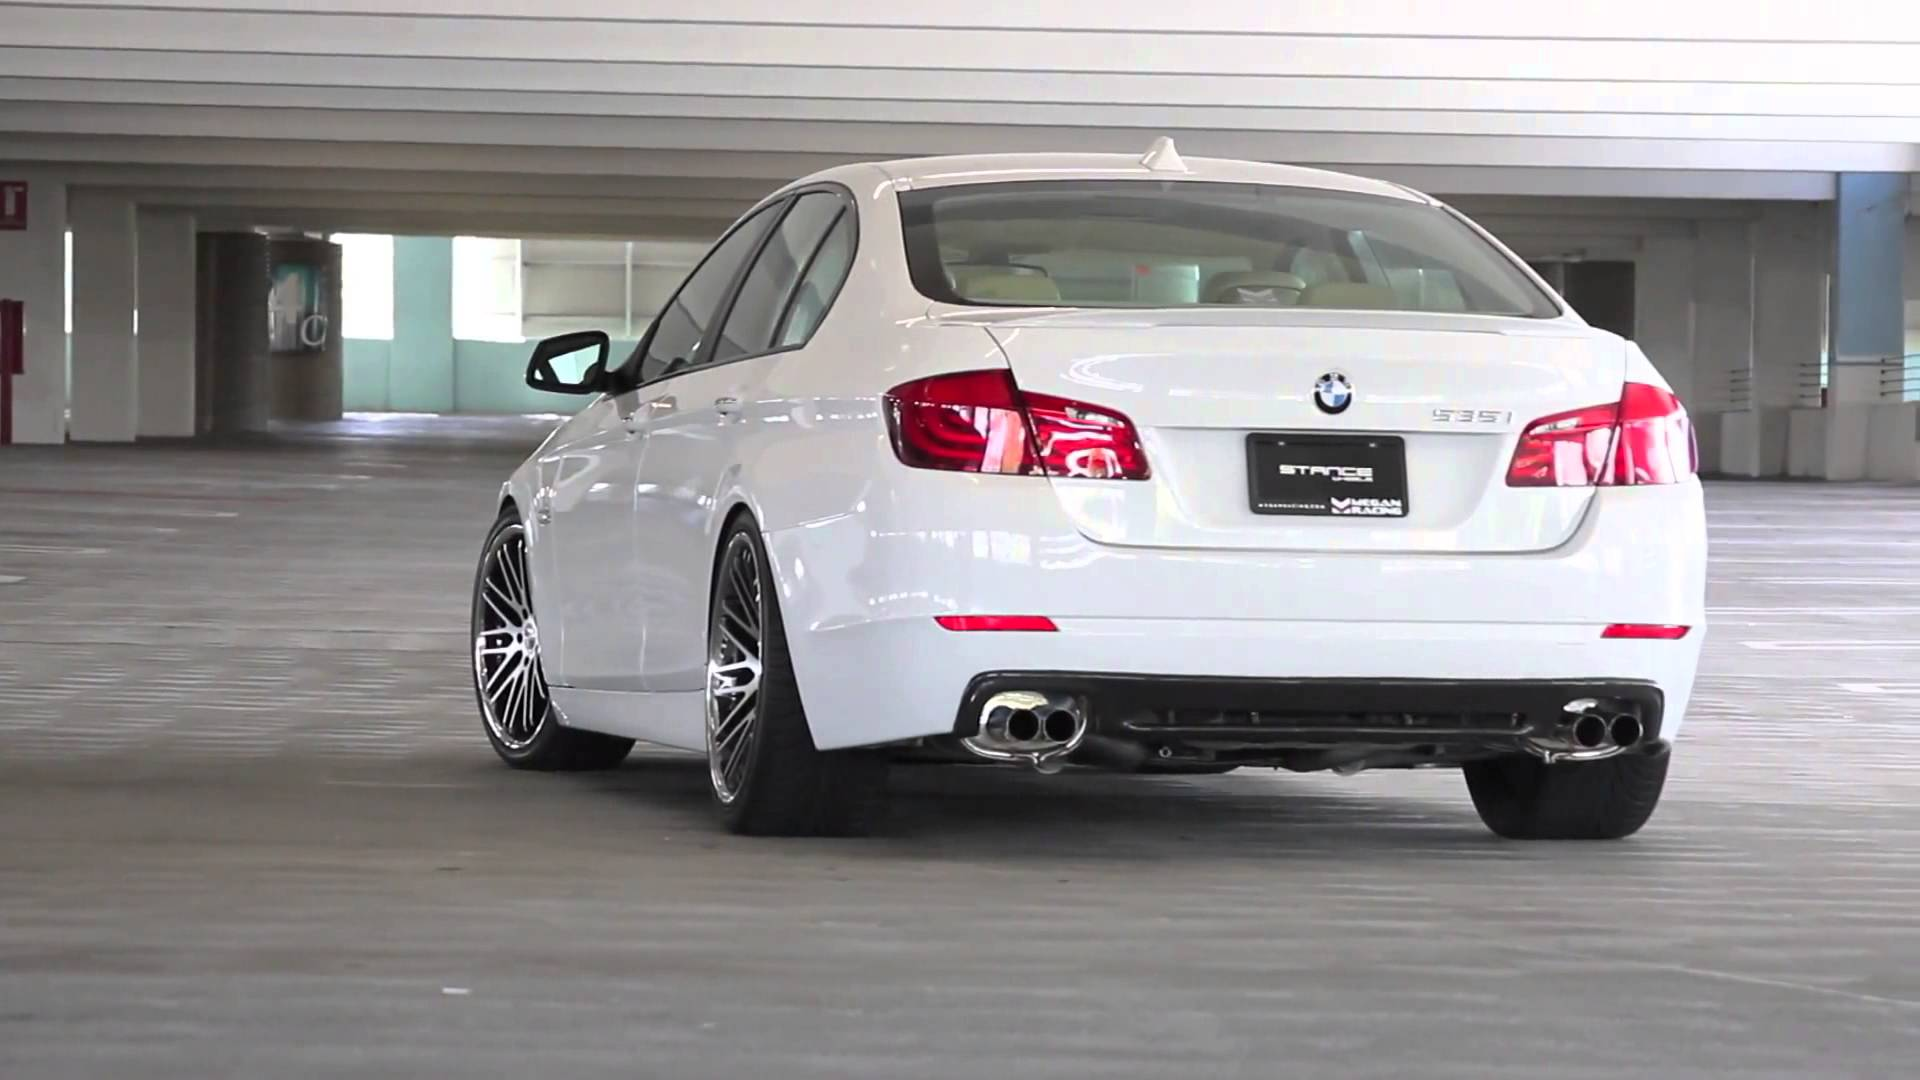 Bmw 535i 2015 Review Amazing Pictures And Images Look